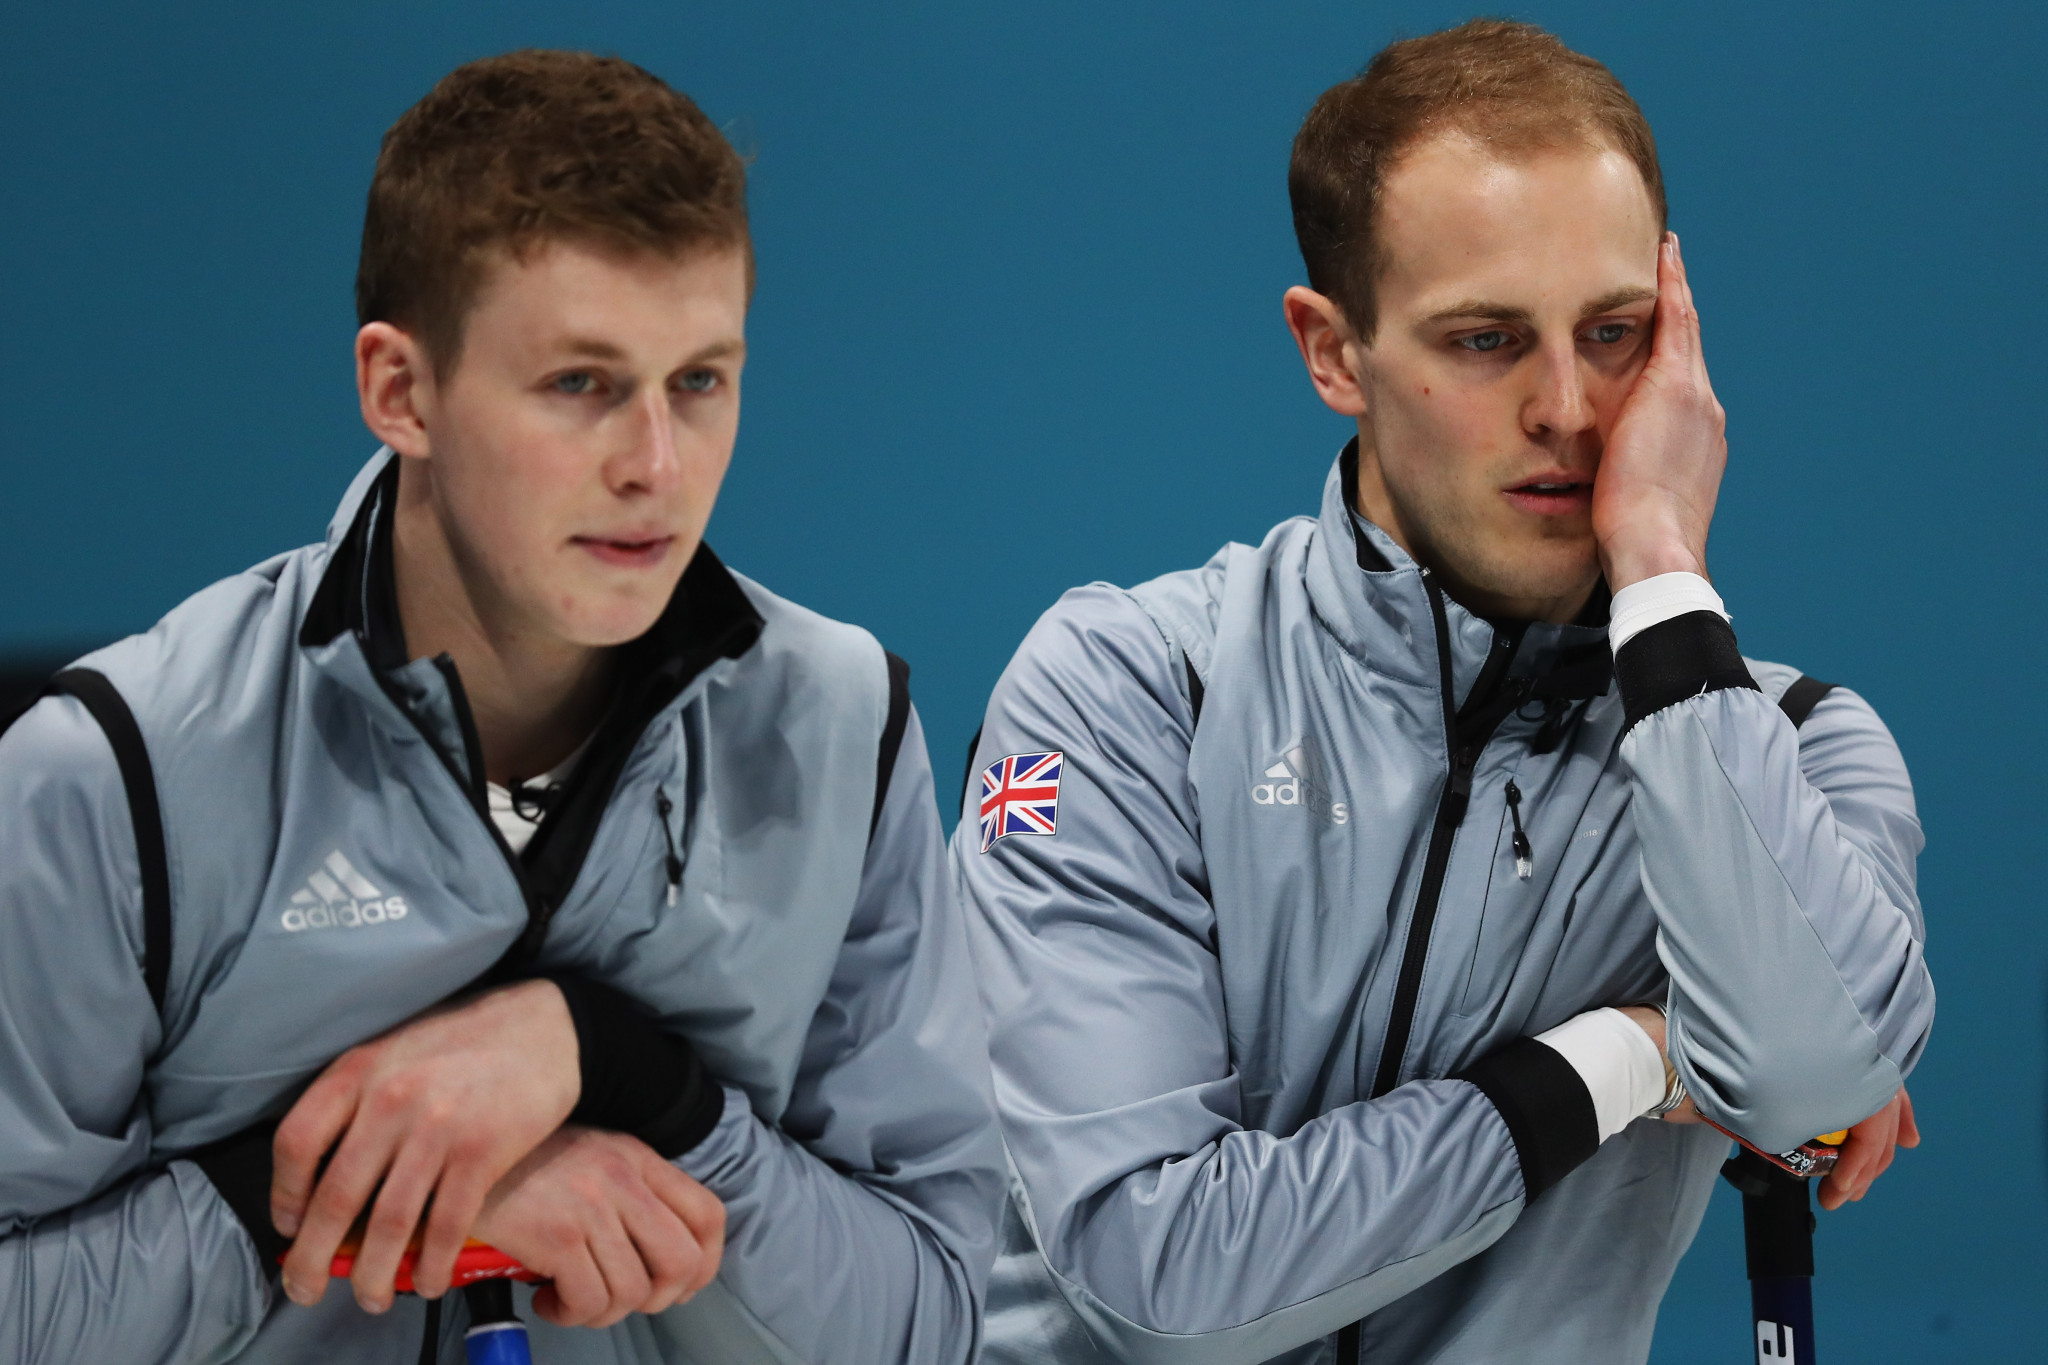 Thomas Muirhead, left, and Kyle Smith, right, competed at Pyeongchang 2018 with Smith as skip, but will now play second and third for Thomas' older brother Glen, at the Scottish Championships ©Getty Images